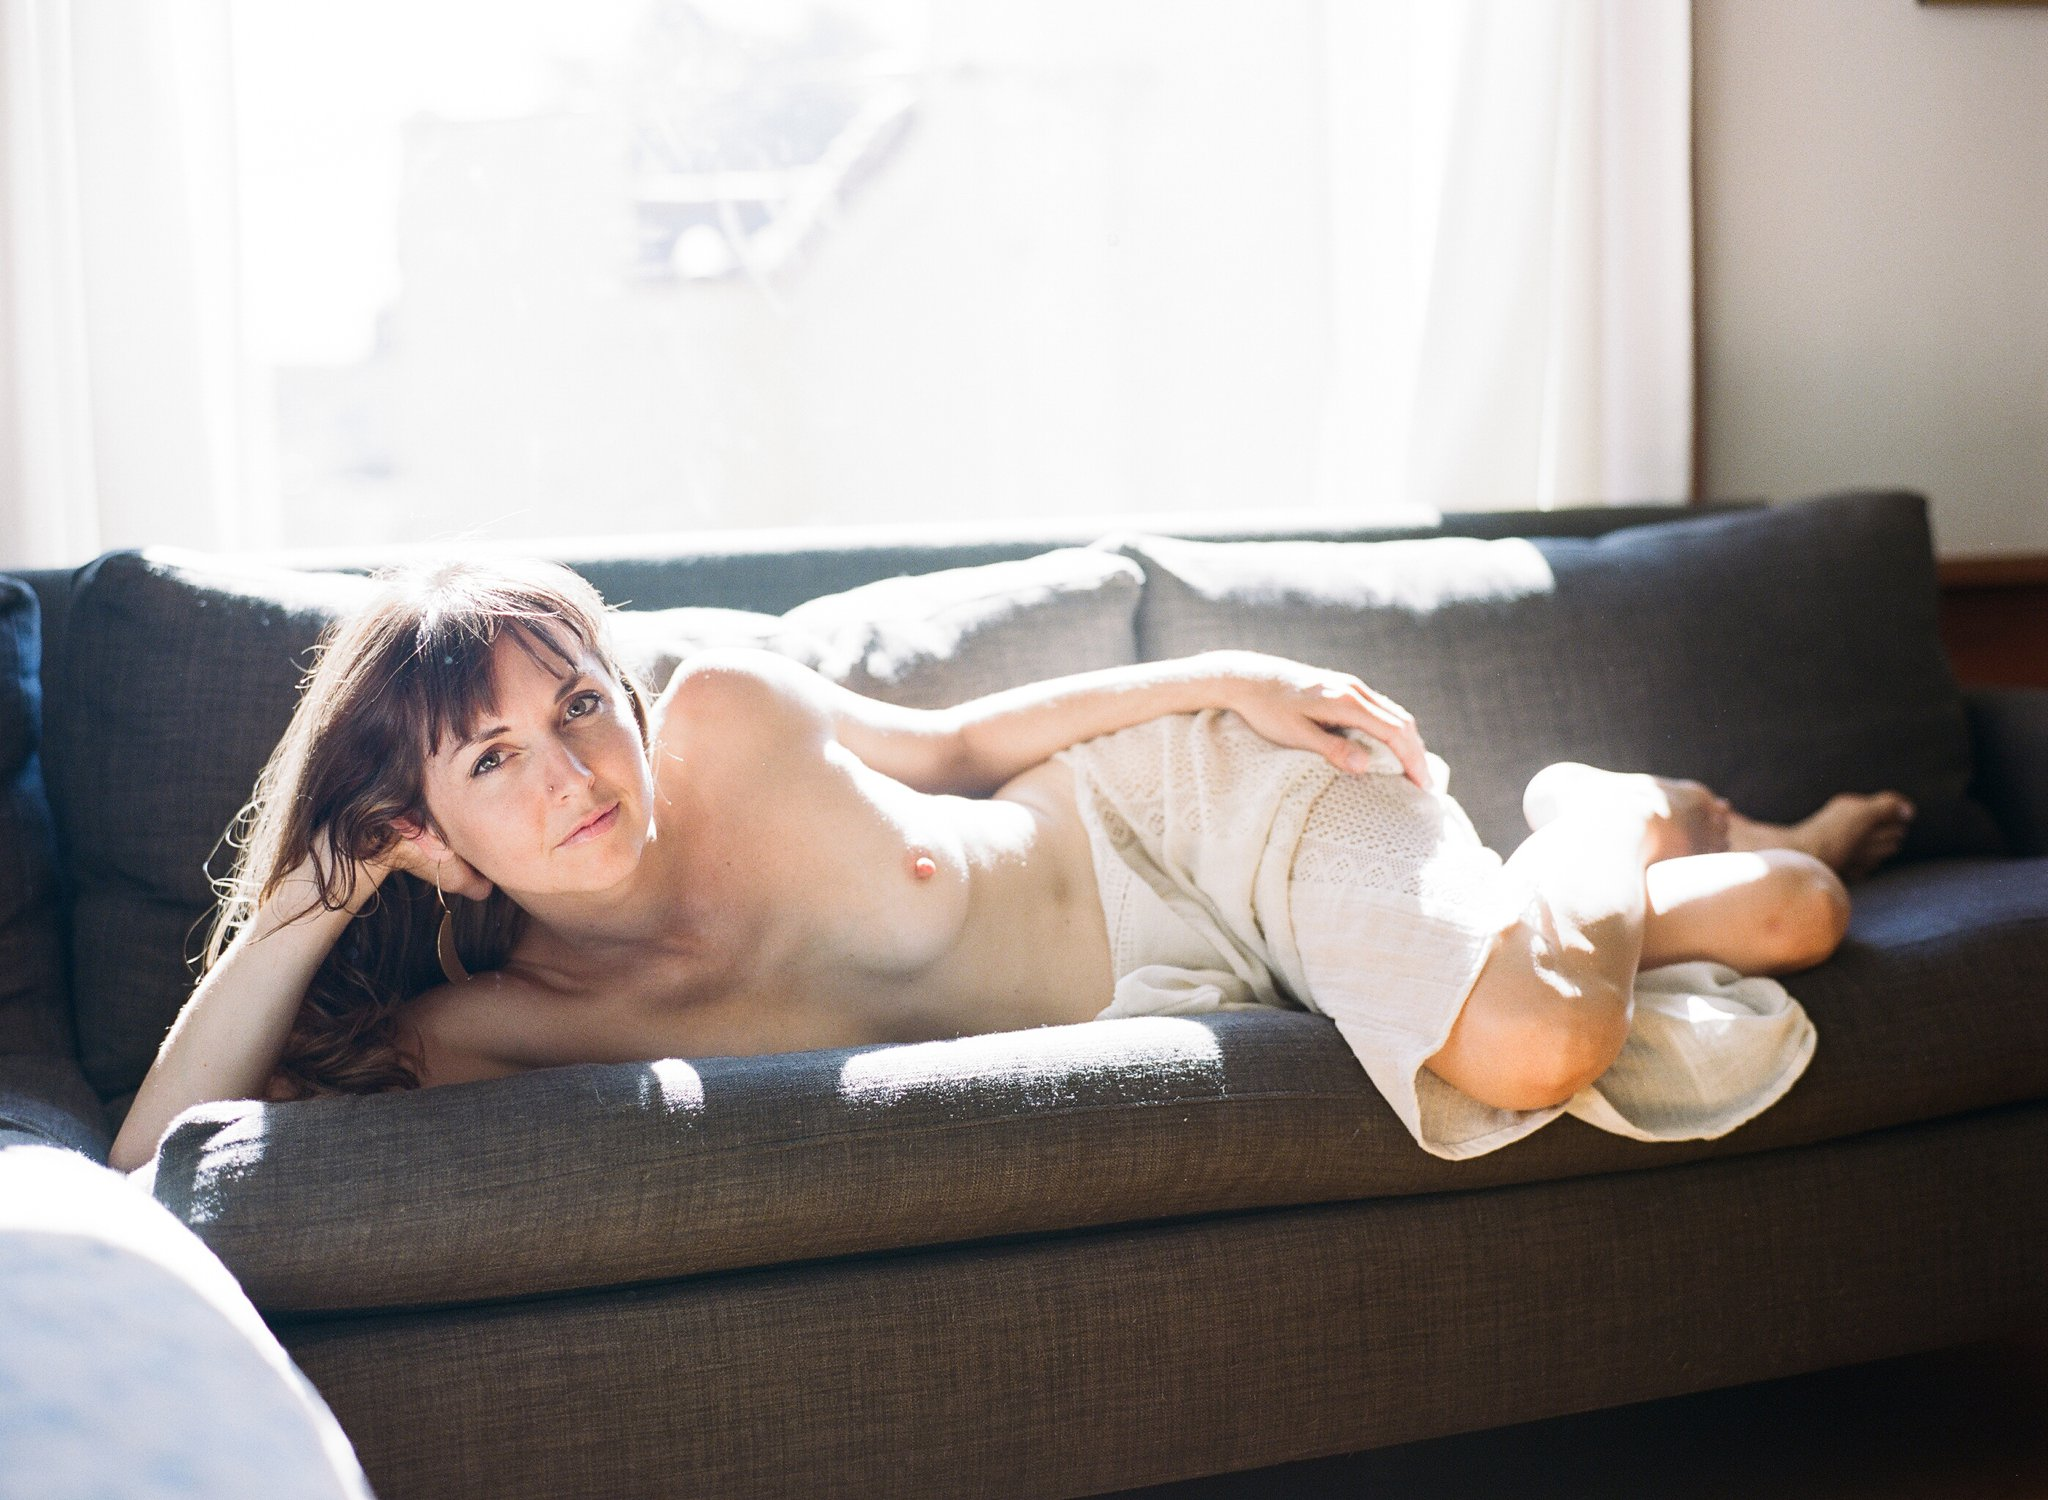 san francisco boudoir photographer destination boudoir photographer shannon griffin photography_0031.jpg